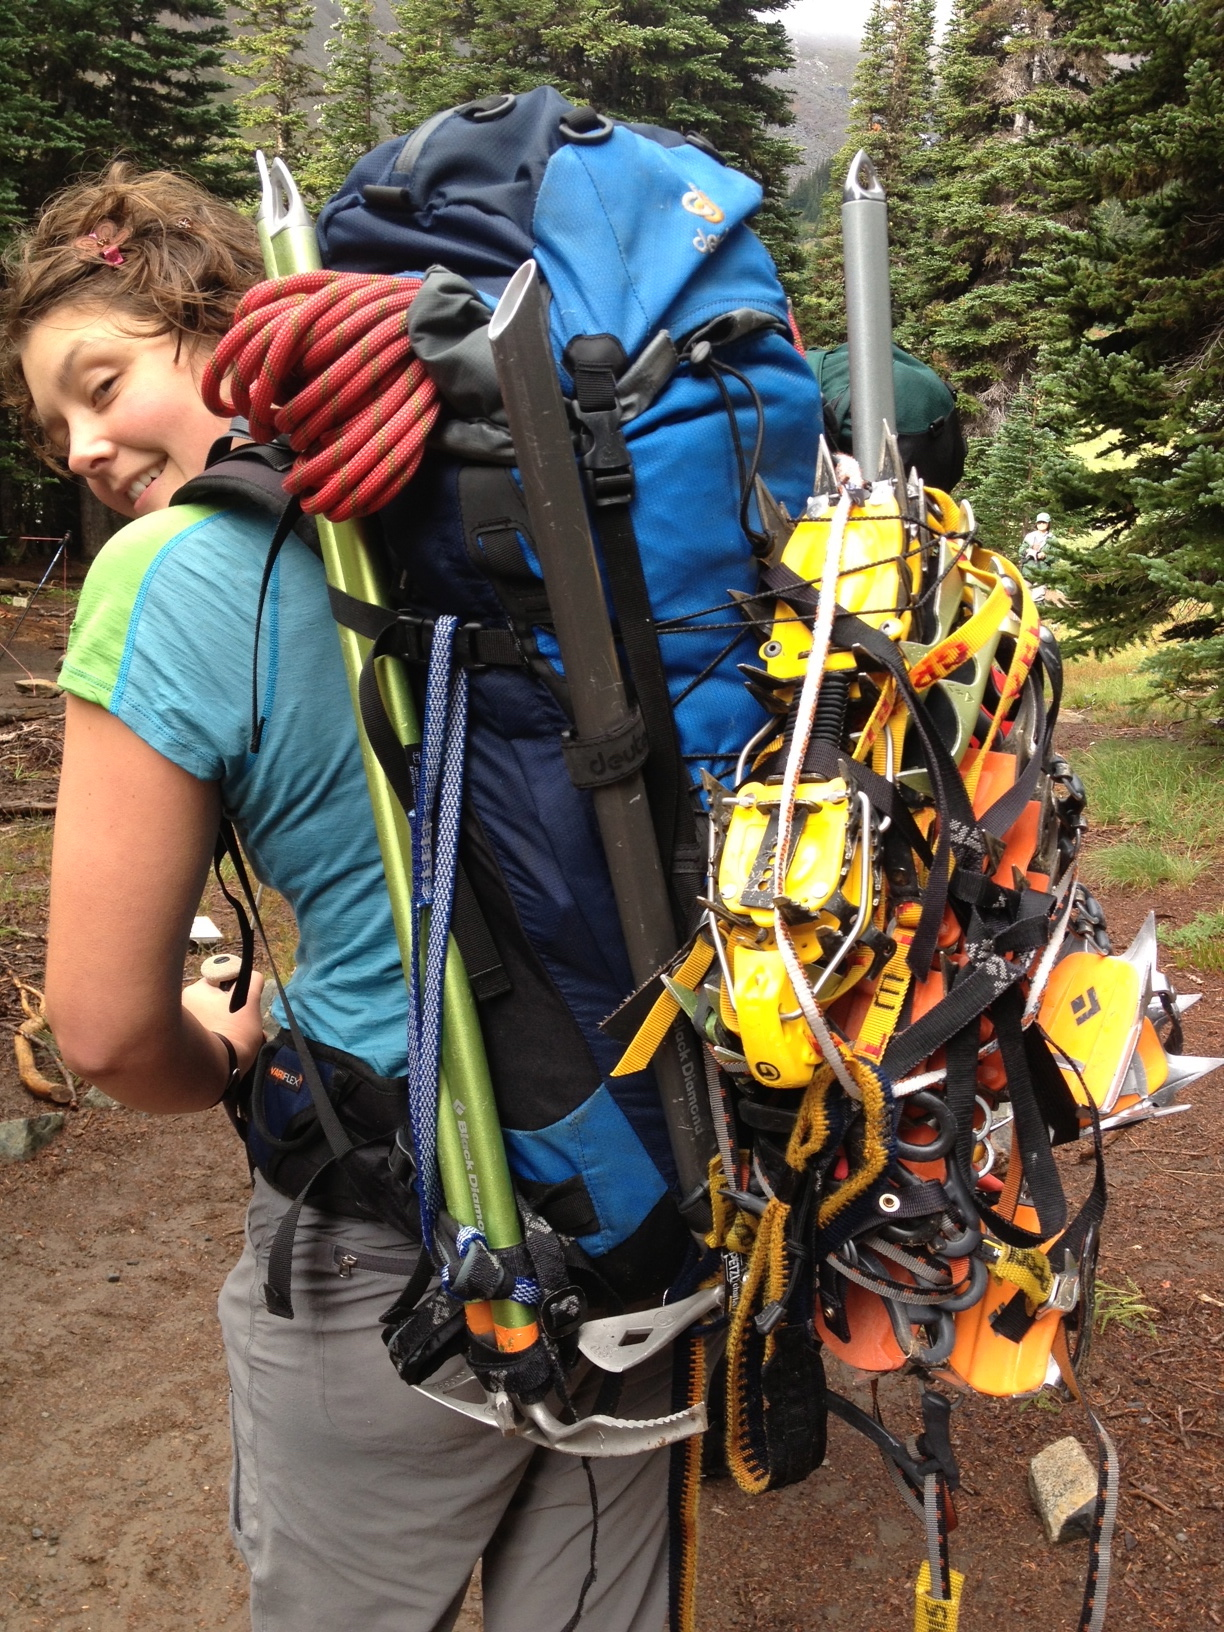 Author and Seattle Mountain Rescue volunteer Bree Loewen. [Photo] Bree Loewen Collection